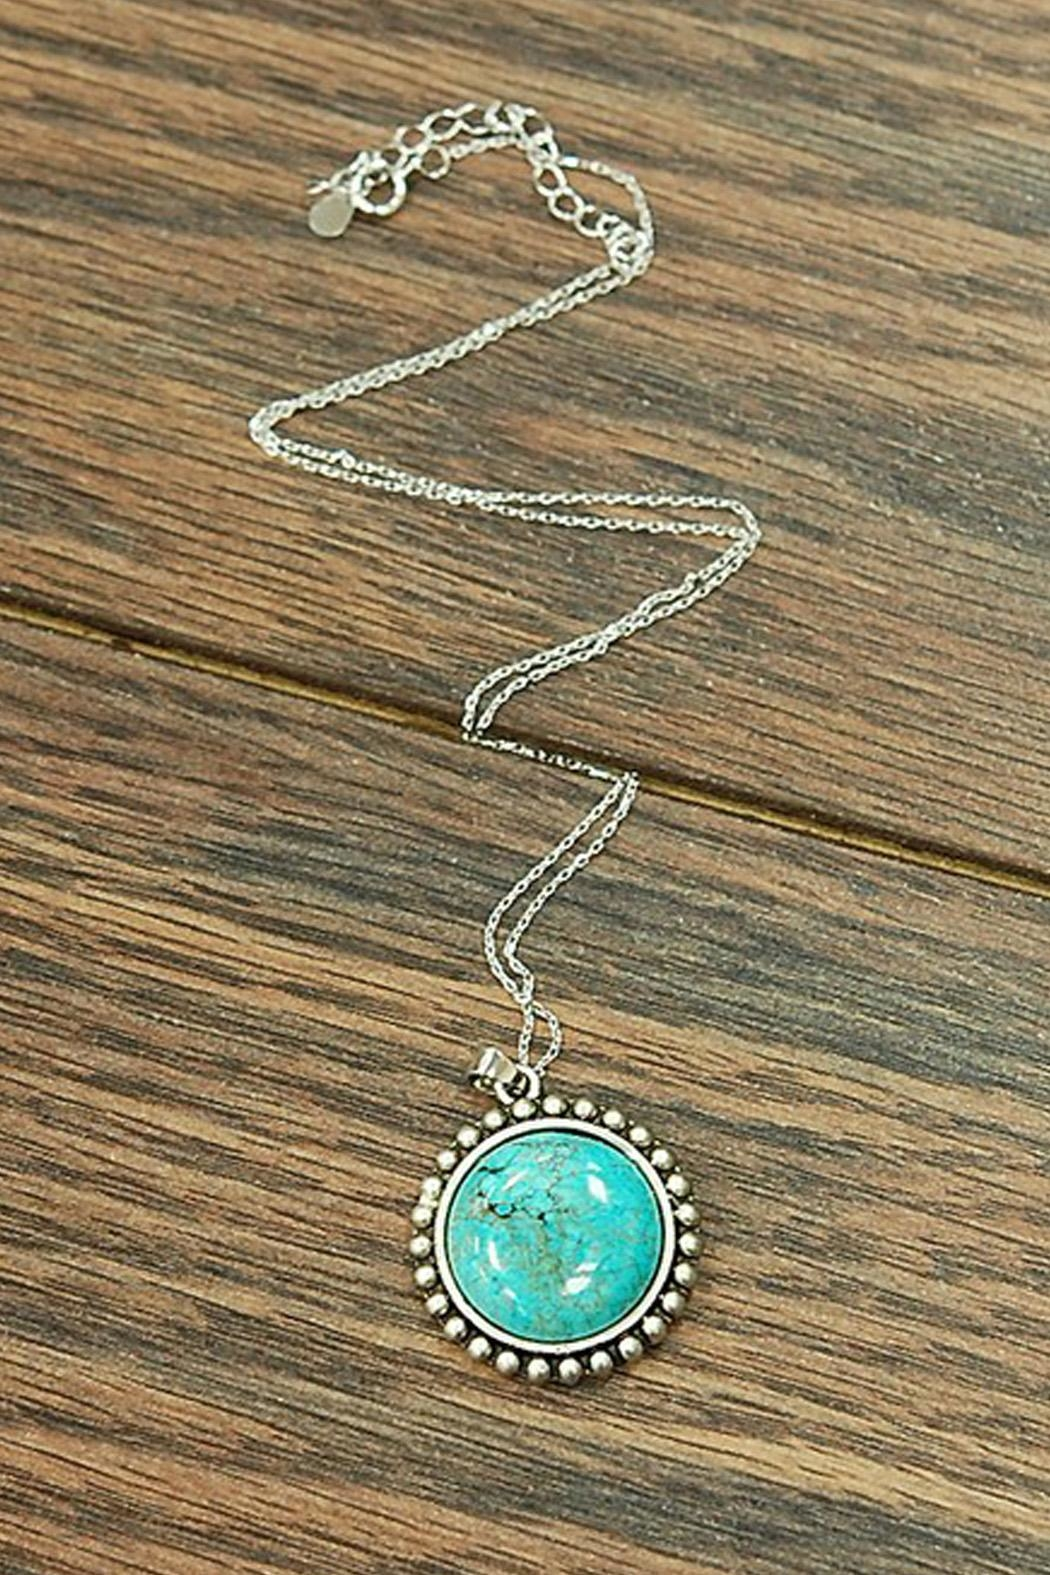 Wild Lilies Jewelry  Turquoise Pendant Necklace - Main Image